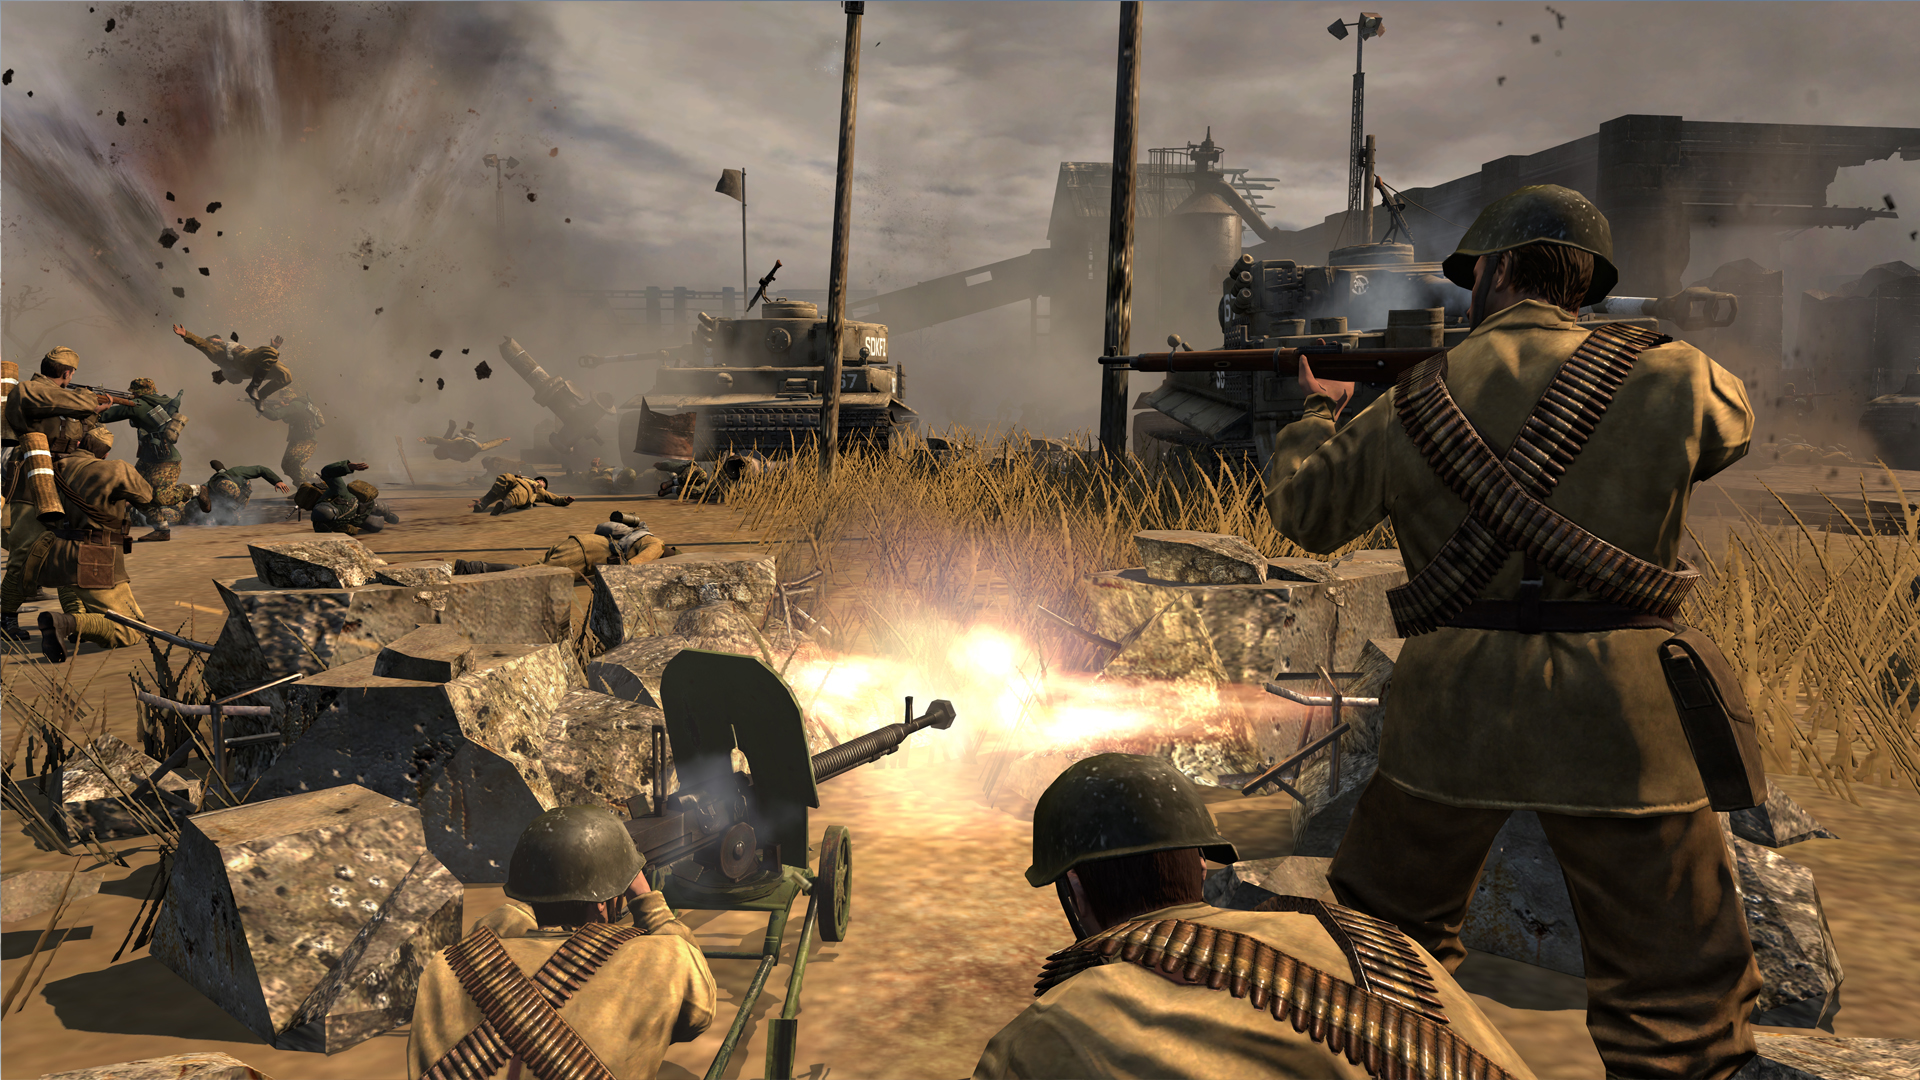 First Contact Company Of Heroes 2 Single Player Campaign Coh2 Org